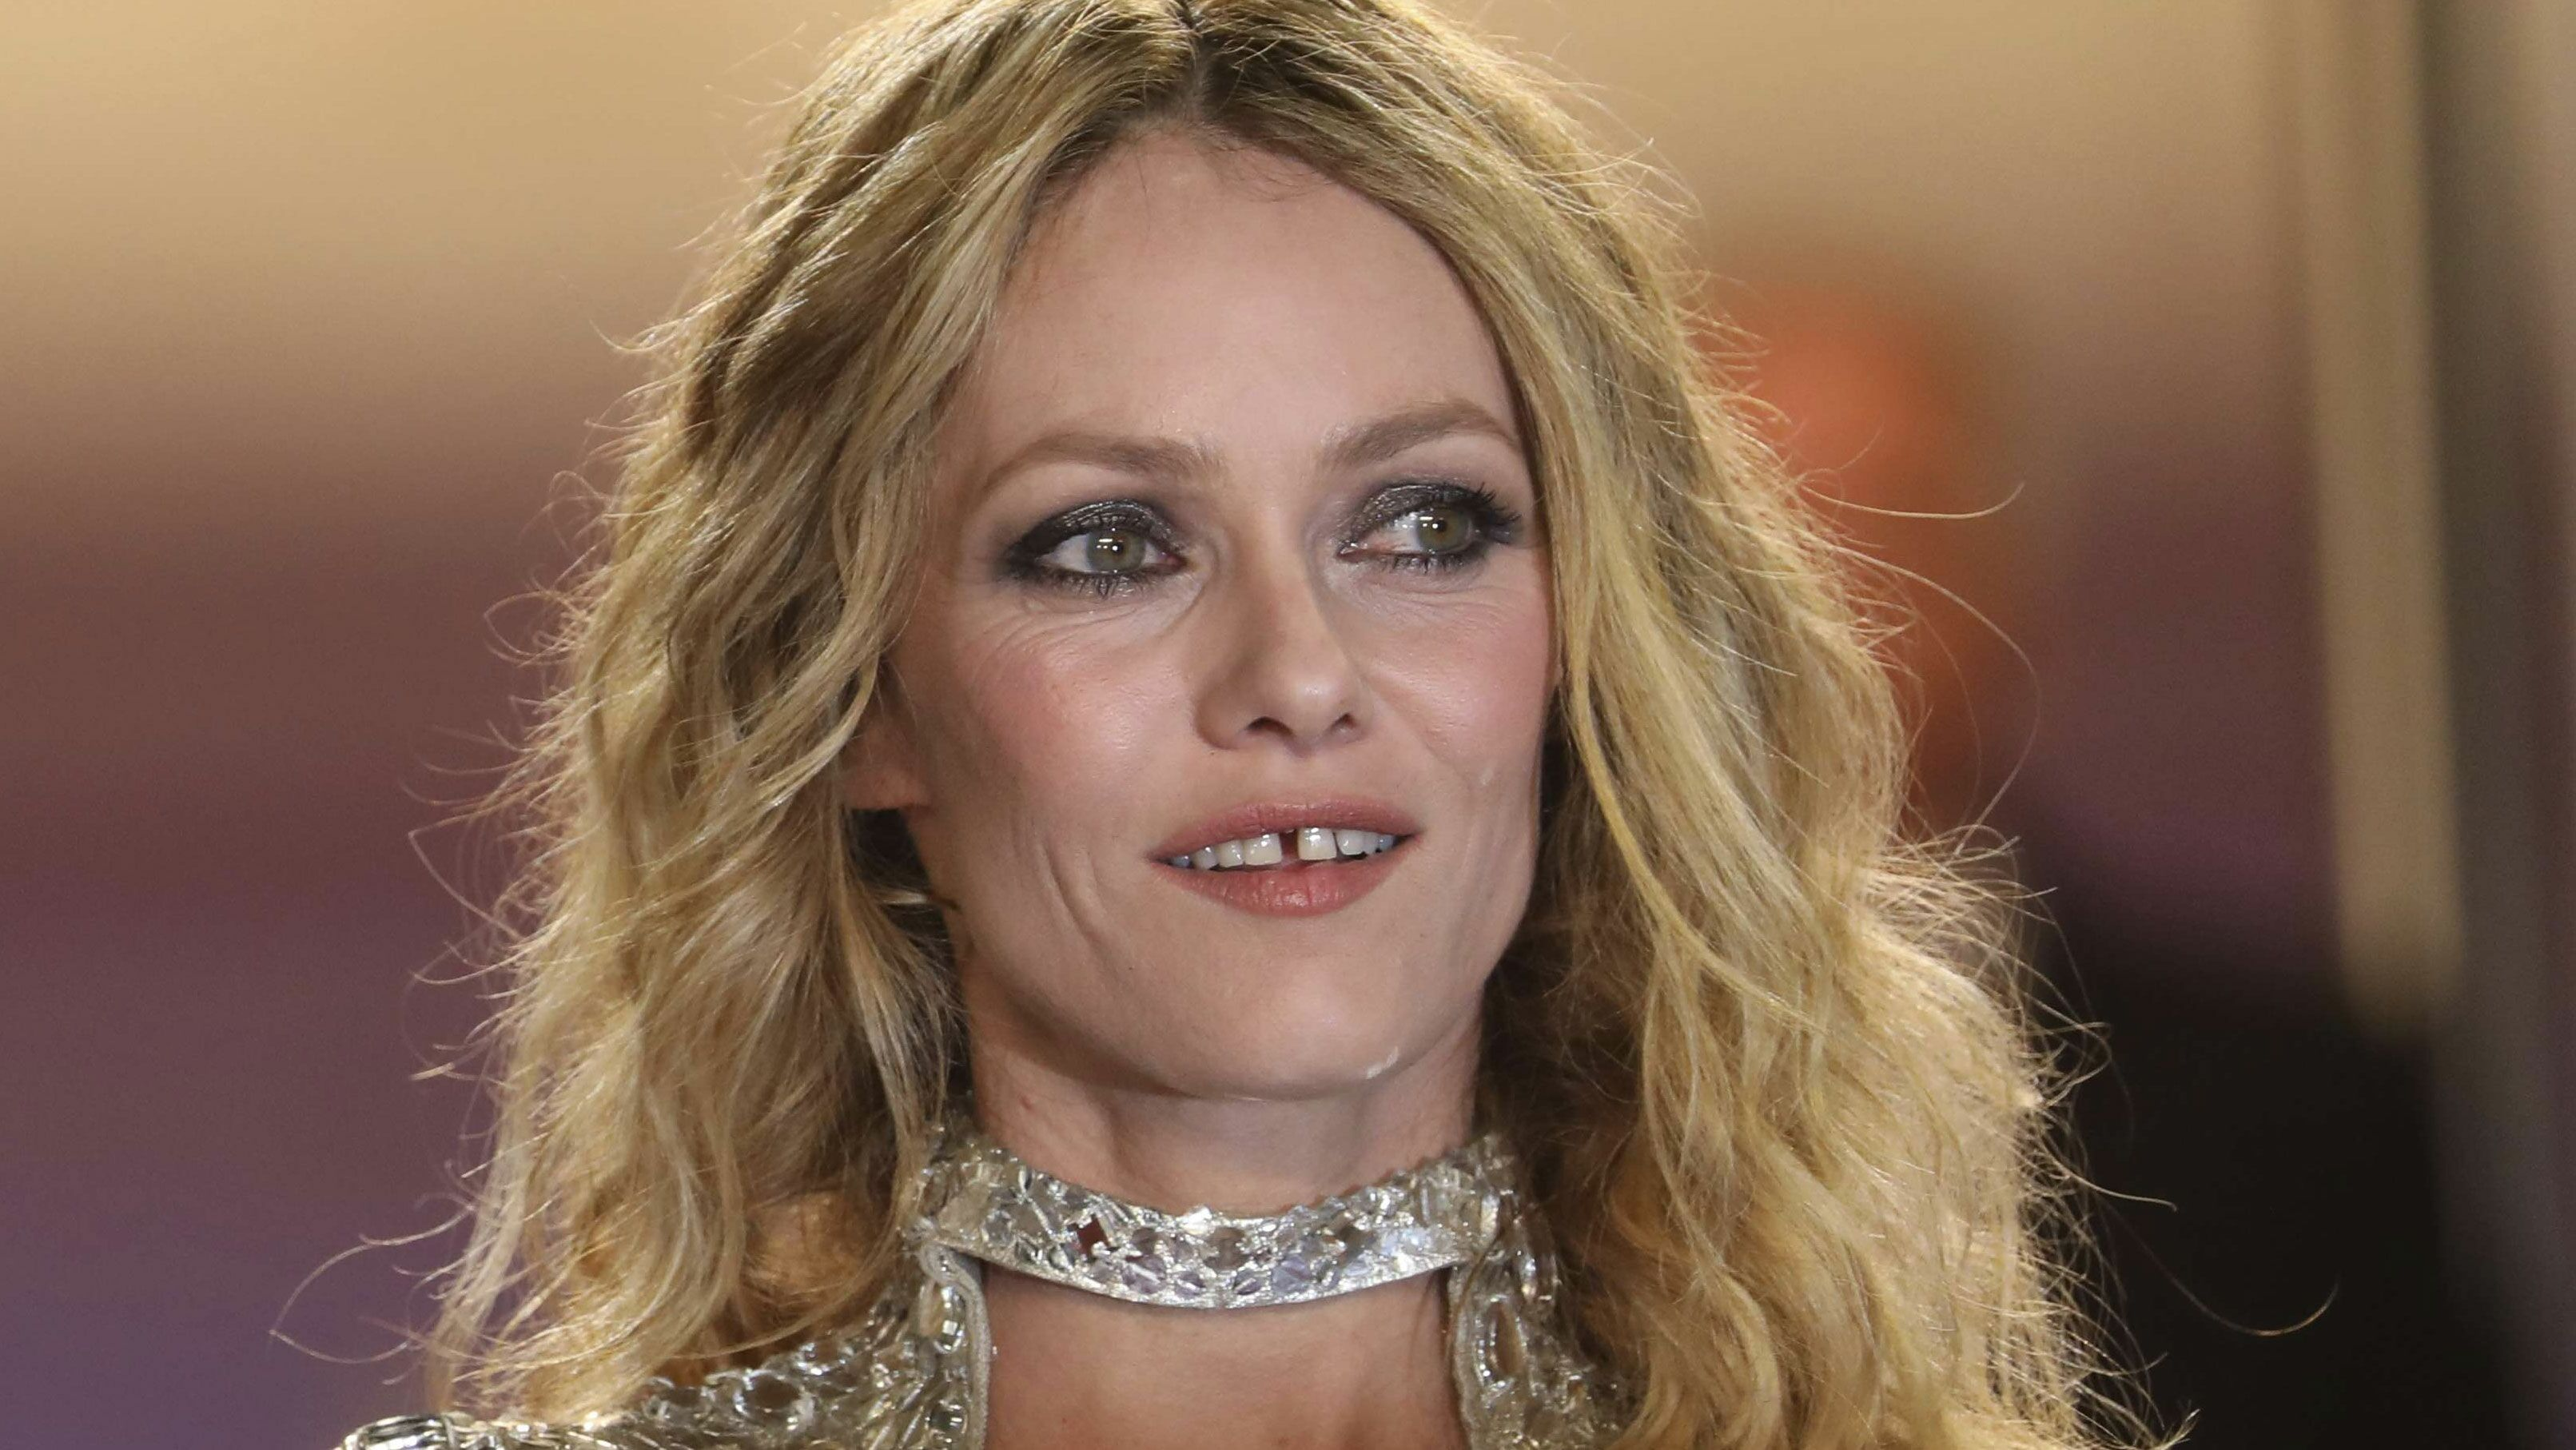 Photos Vanessa Paradis nude photos 2019